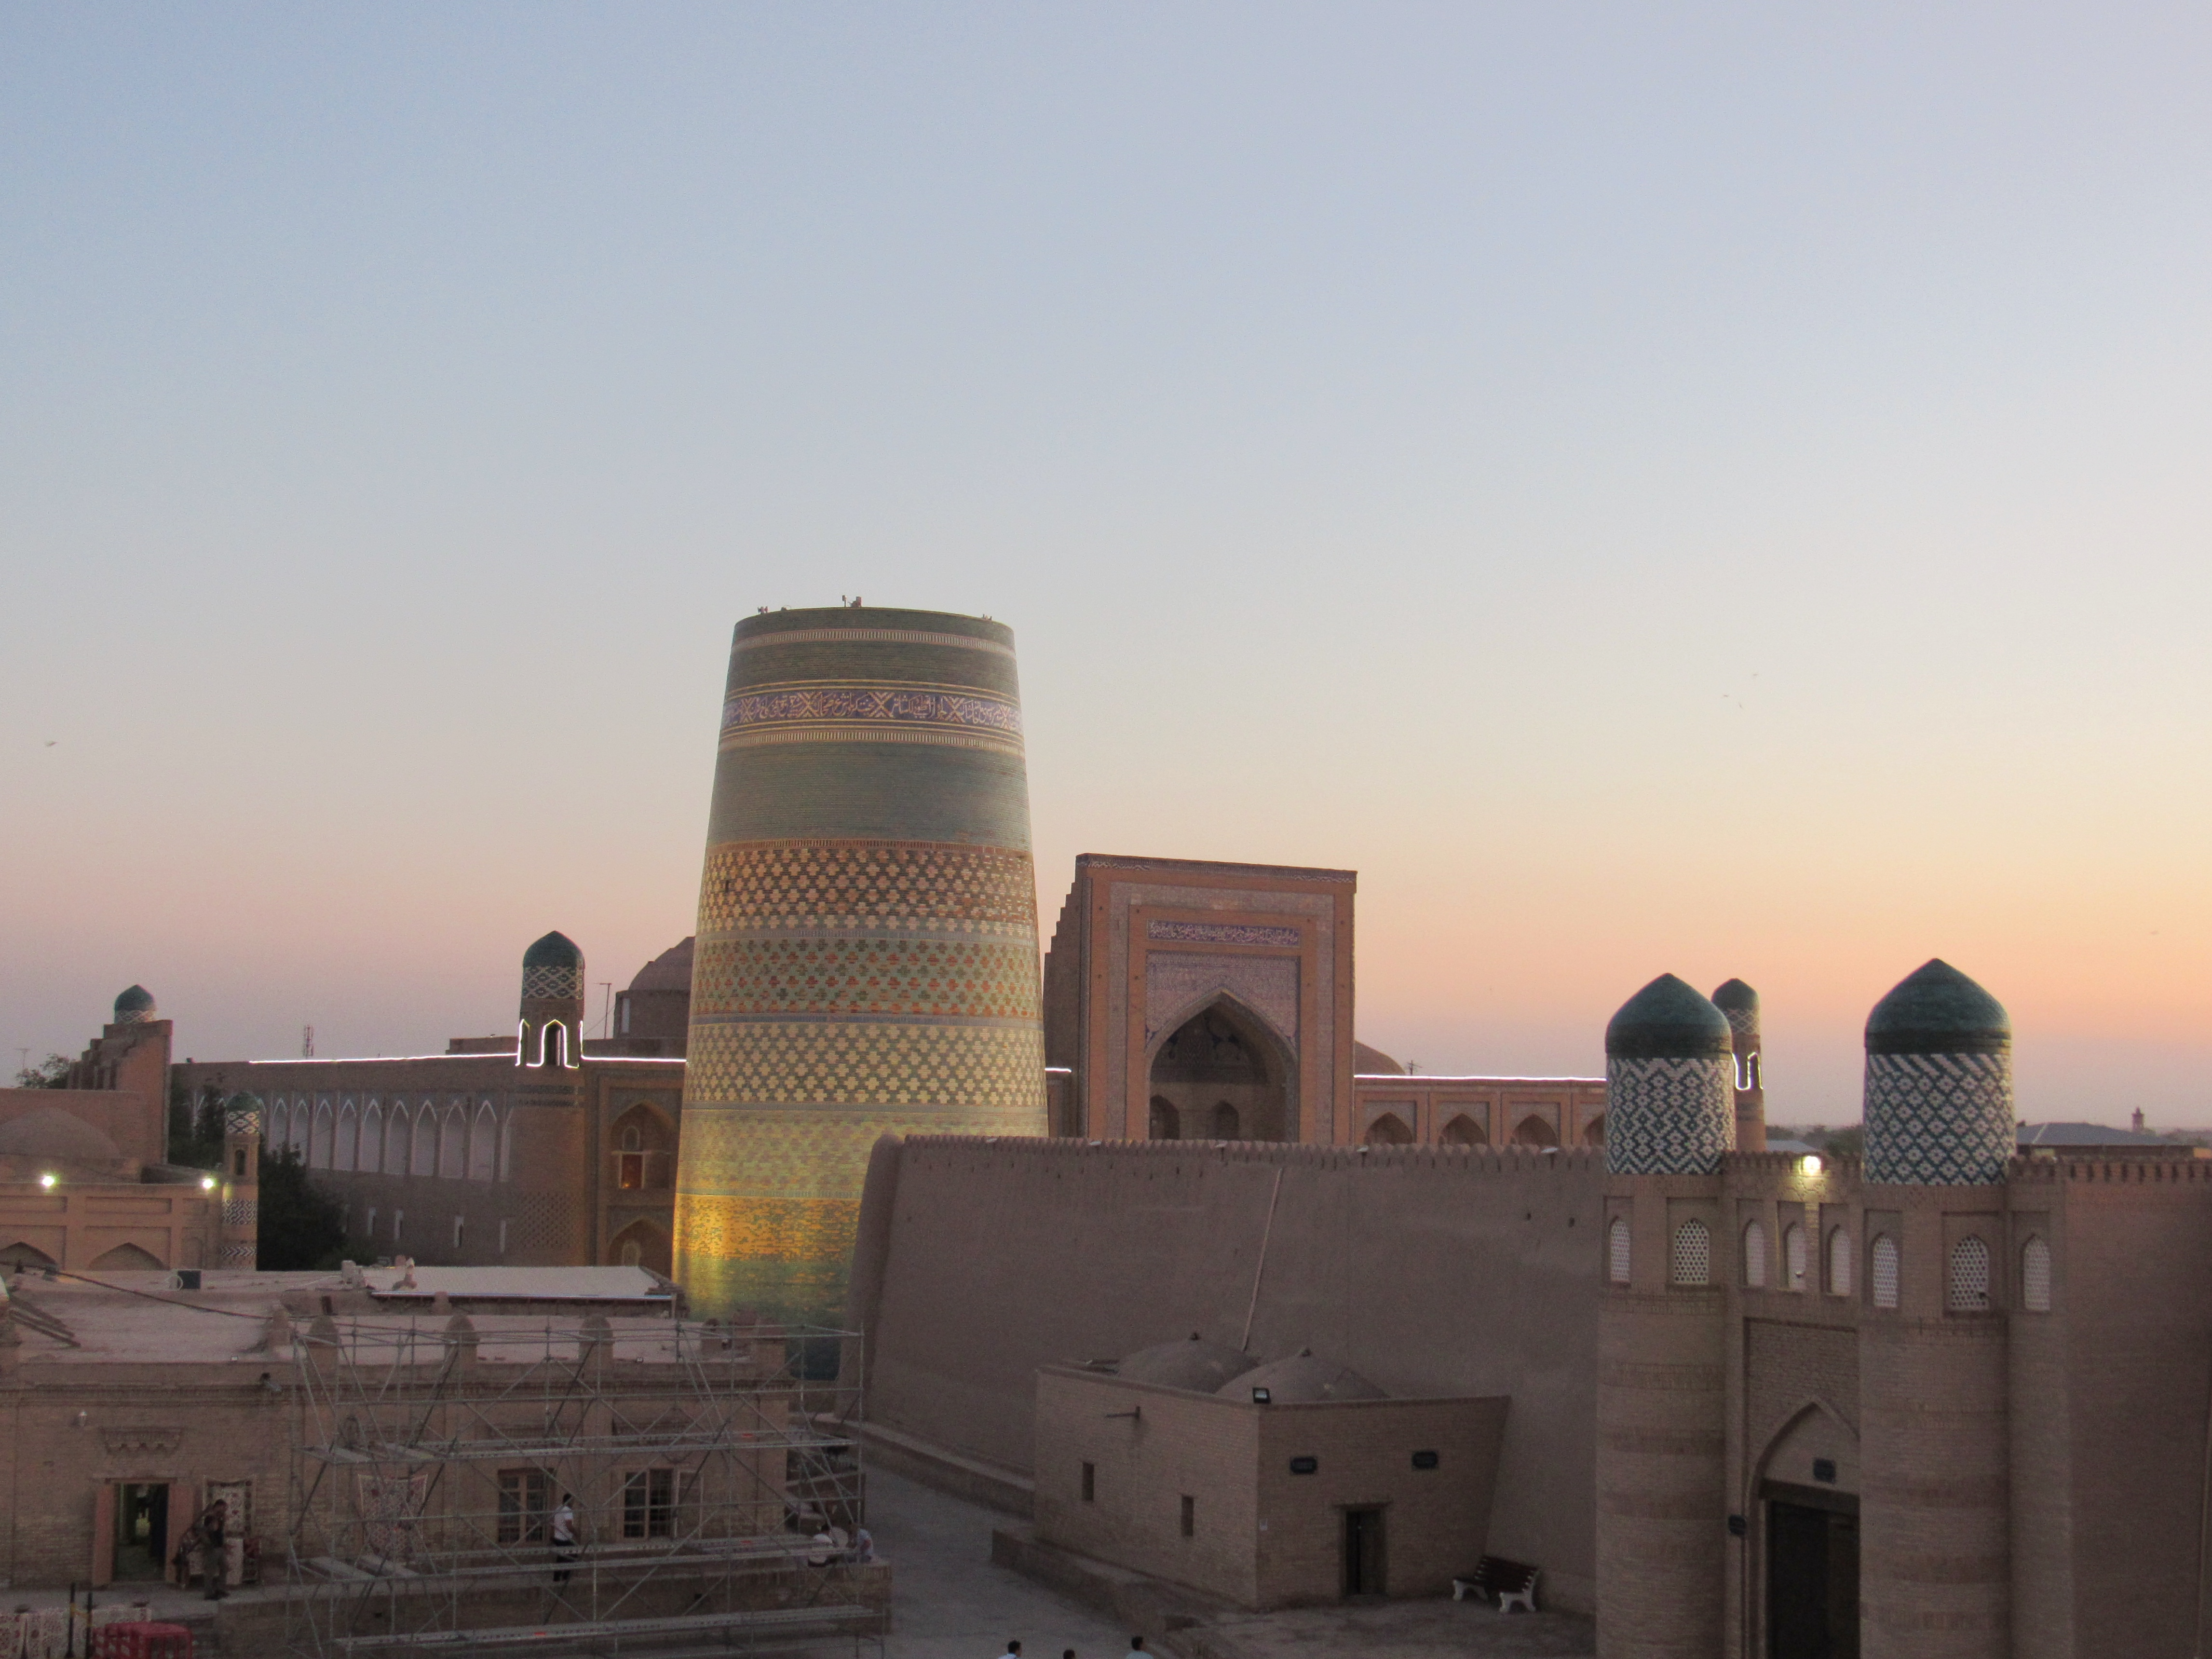 Kalta Minor Minaret at sunset